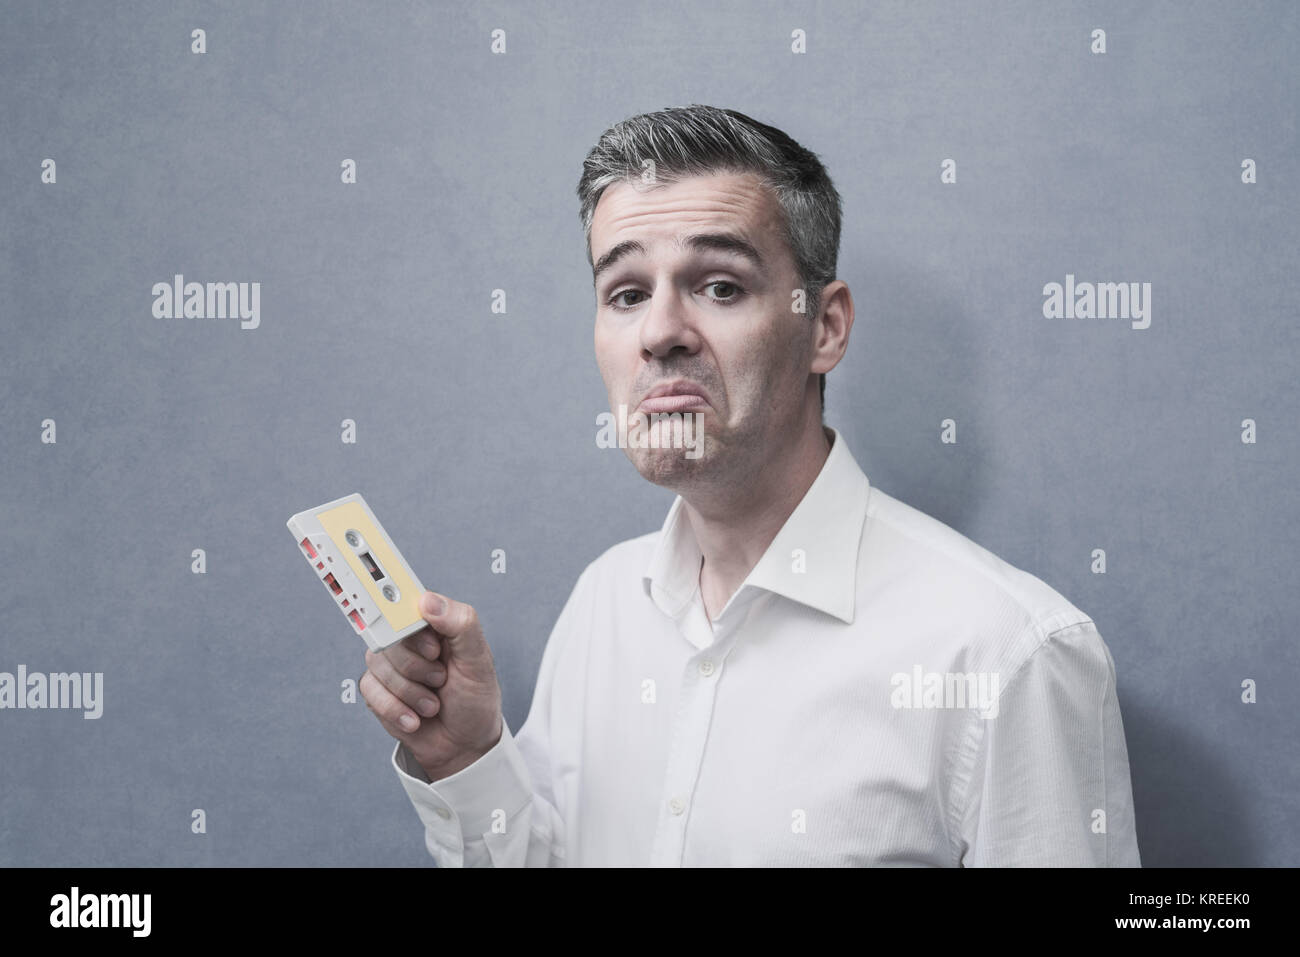 Clueless confused man holding an old audio cassette, vintage outdated technology concept - Stock Image